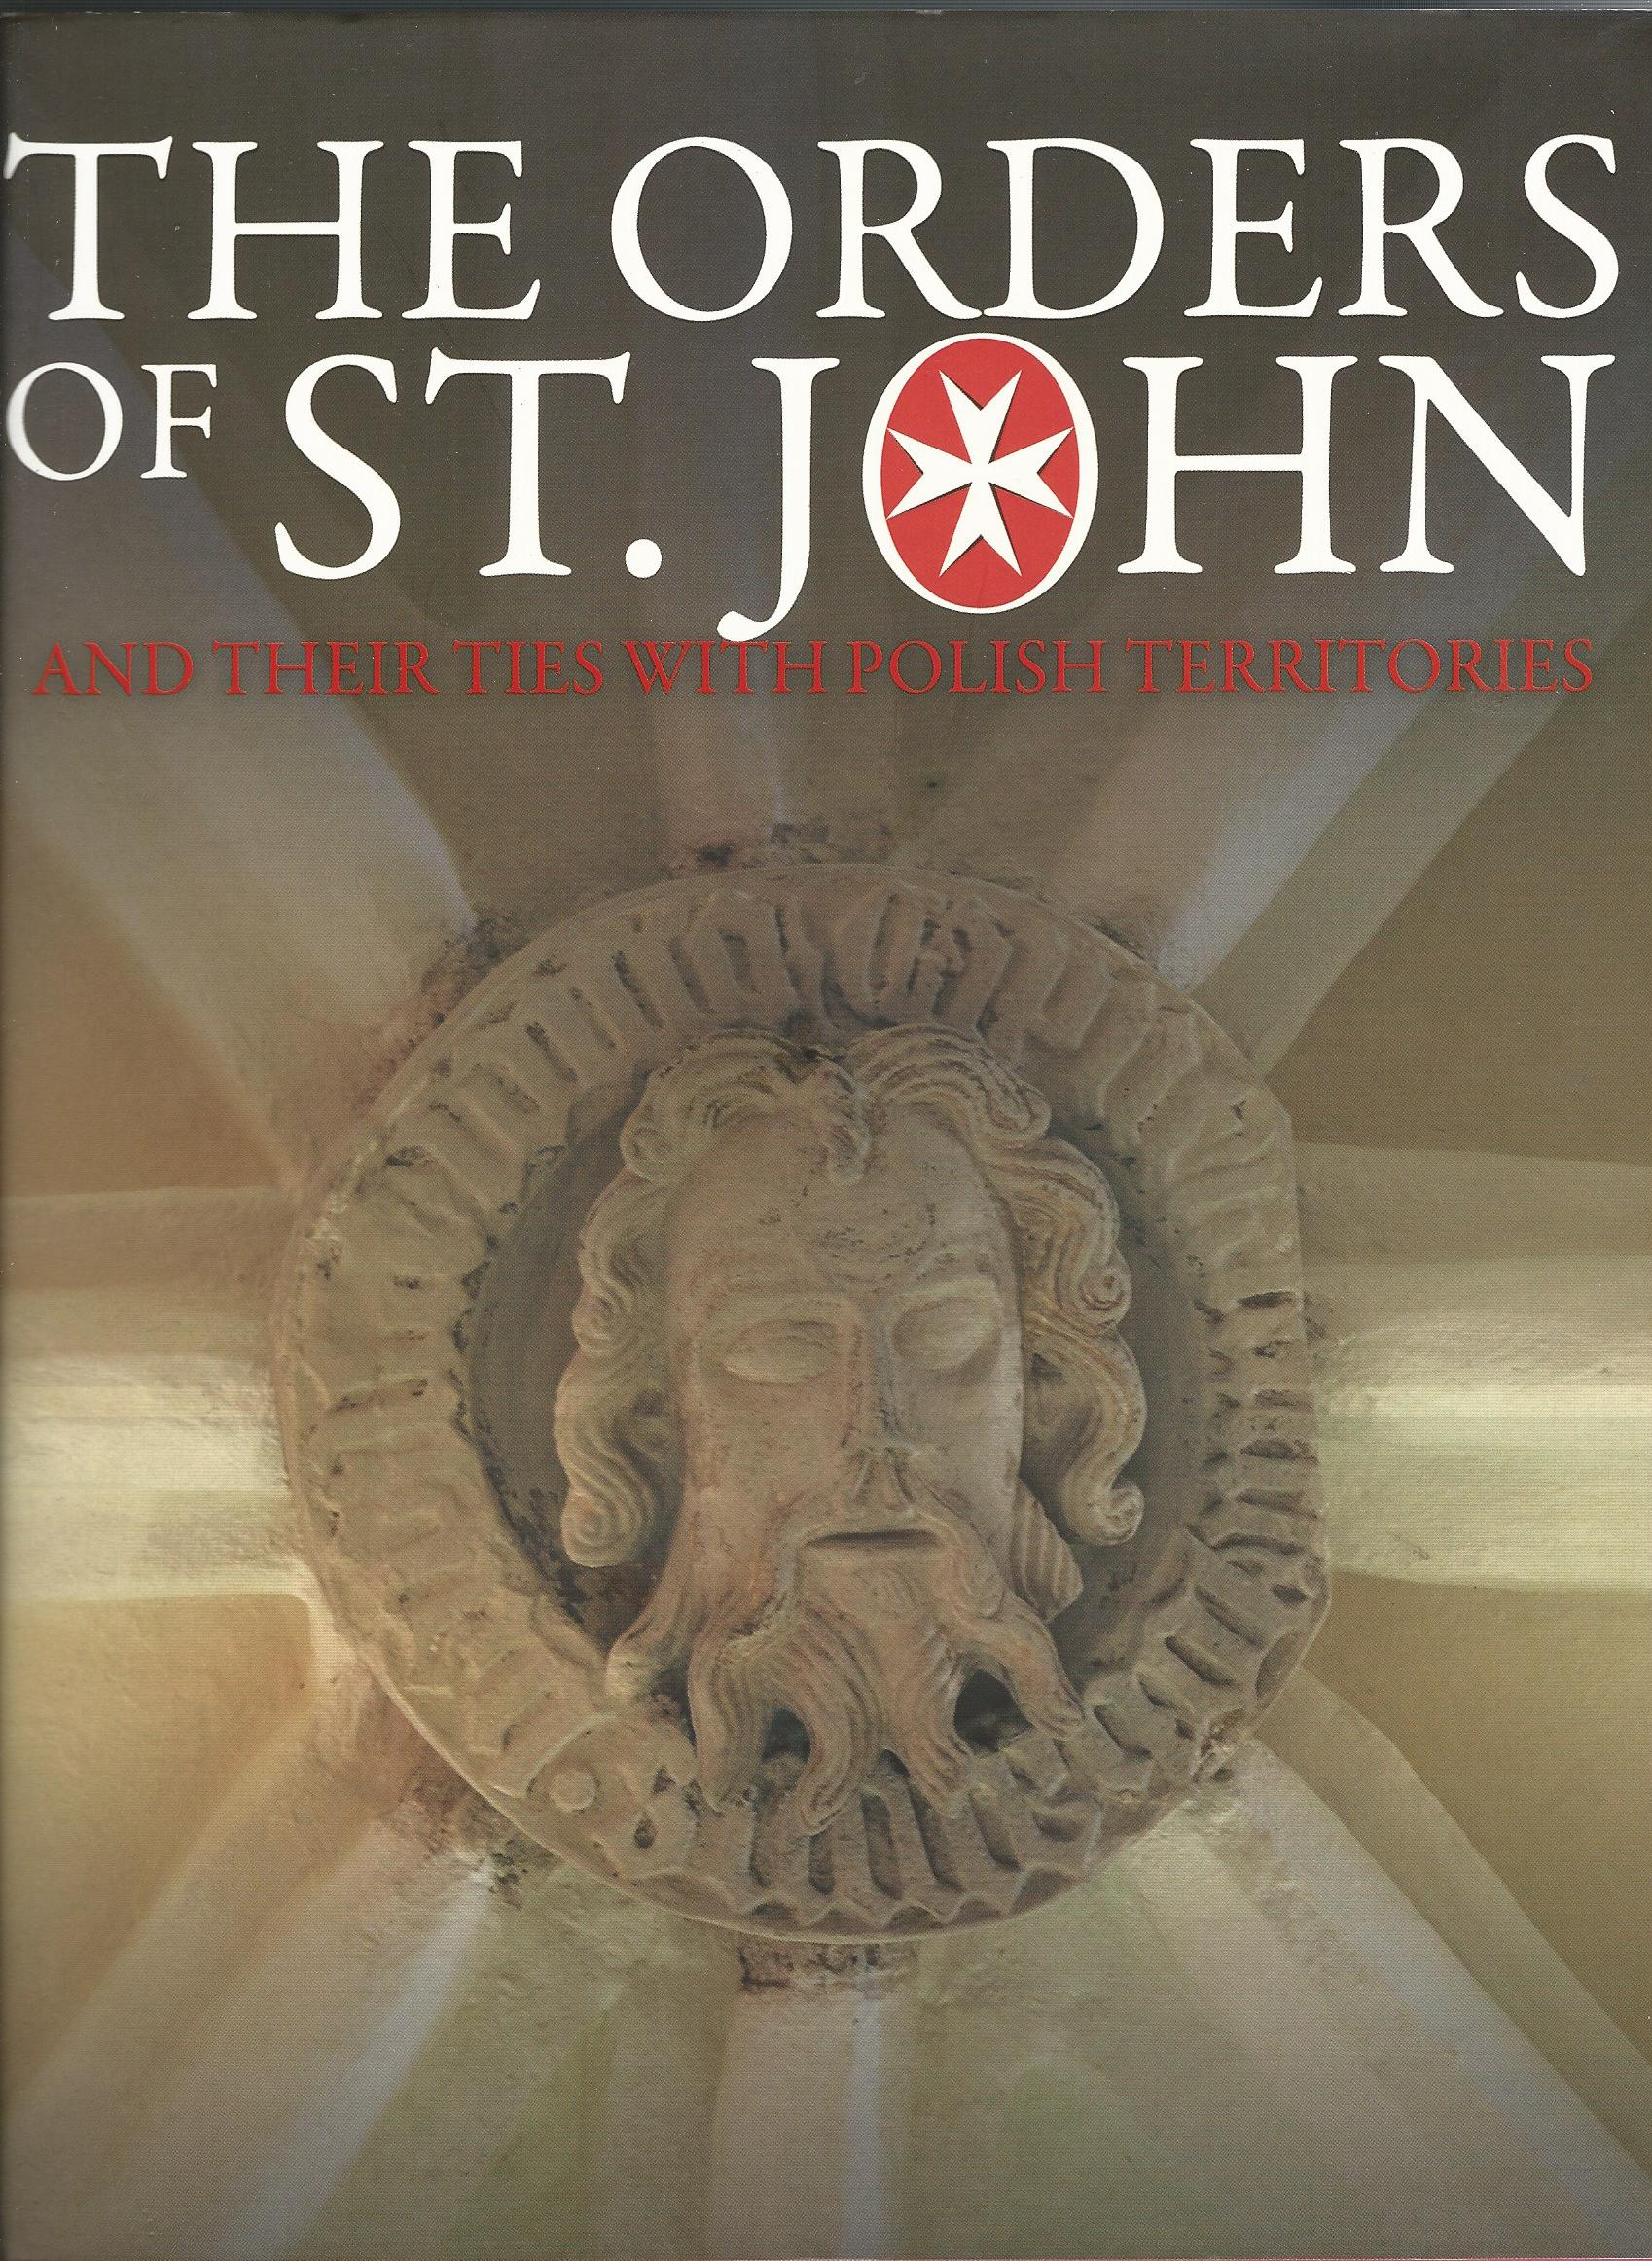 Image for The Orders of St. John and their Ties with Polish Territories.